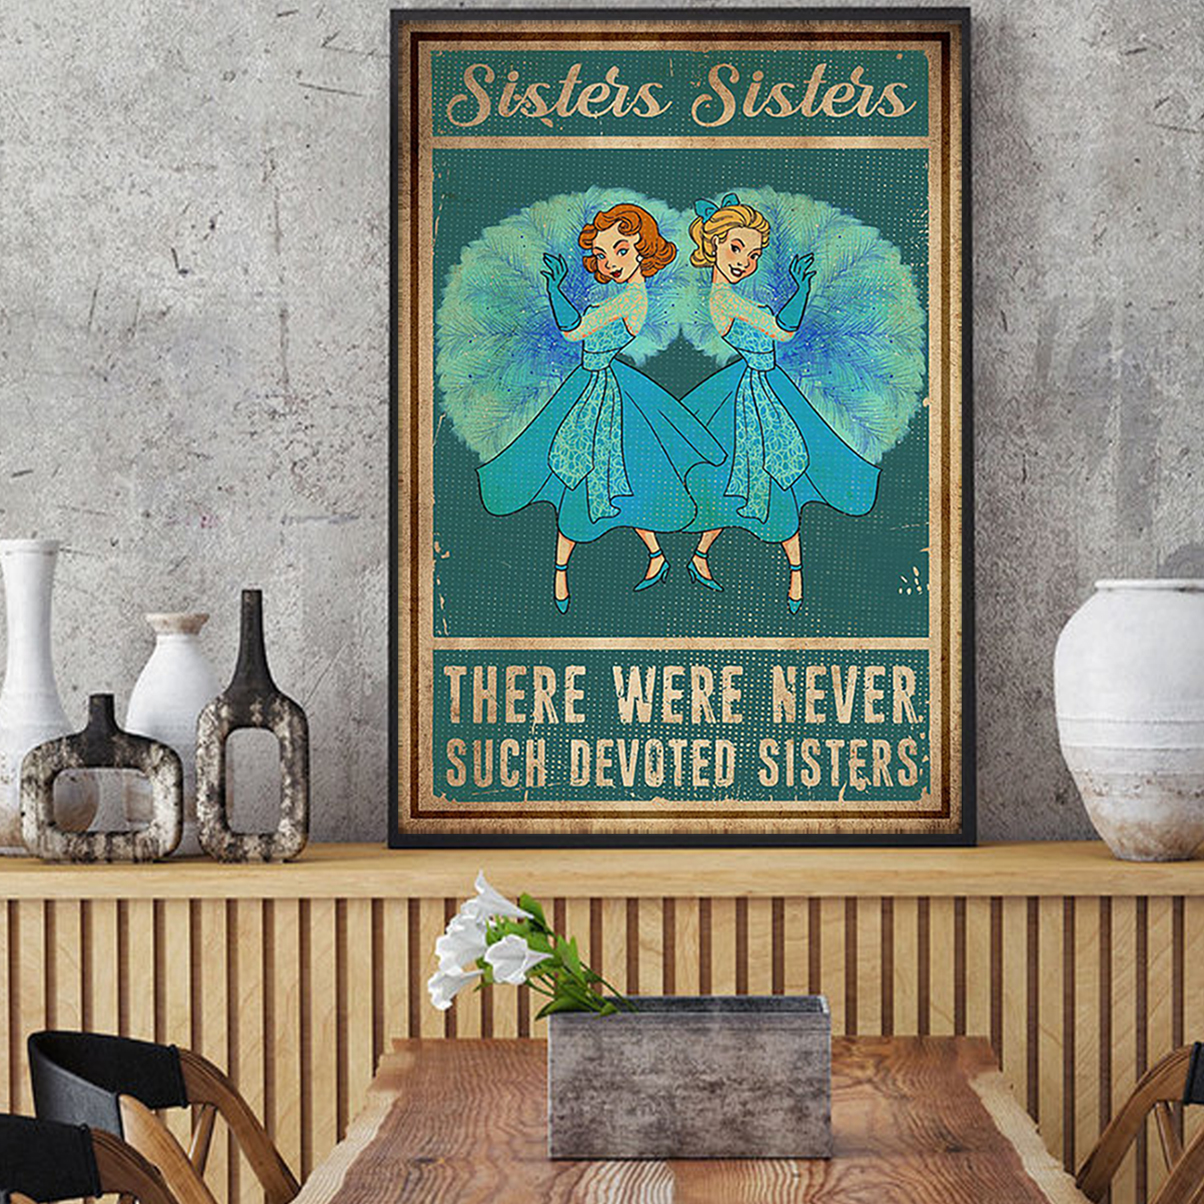 Sisters sisters there were never such devoted sisters poster A1